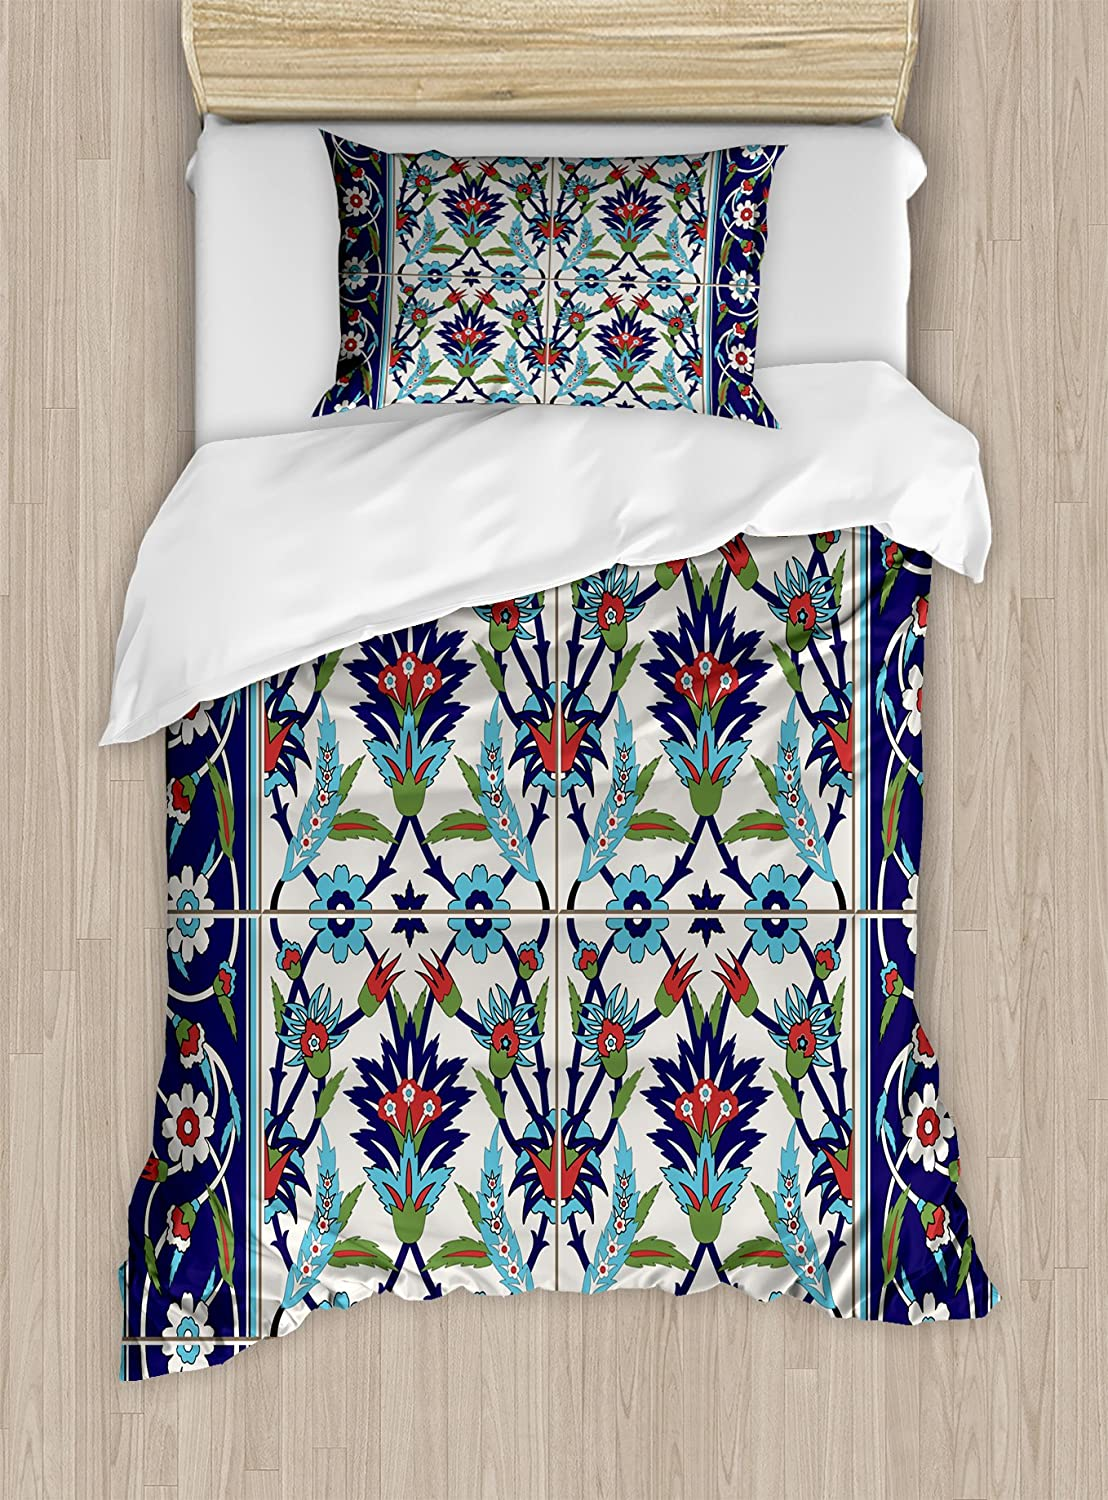 Ambesonne Turkish Pattern Duvet Cover Set, Mosaic Tiles with Nature Inspired Ornaments Tulips and Daisies with Curls, Decorative 2 Piece Bedding Set with 1 Pillow Sham, Twin Size, Blue White